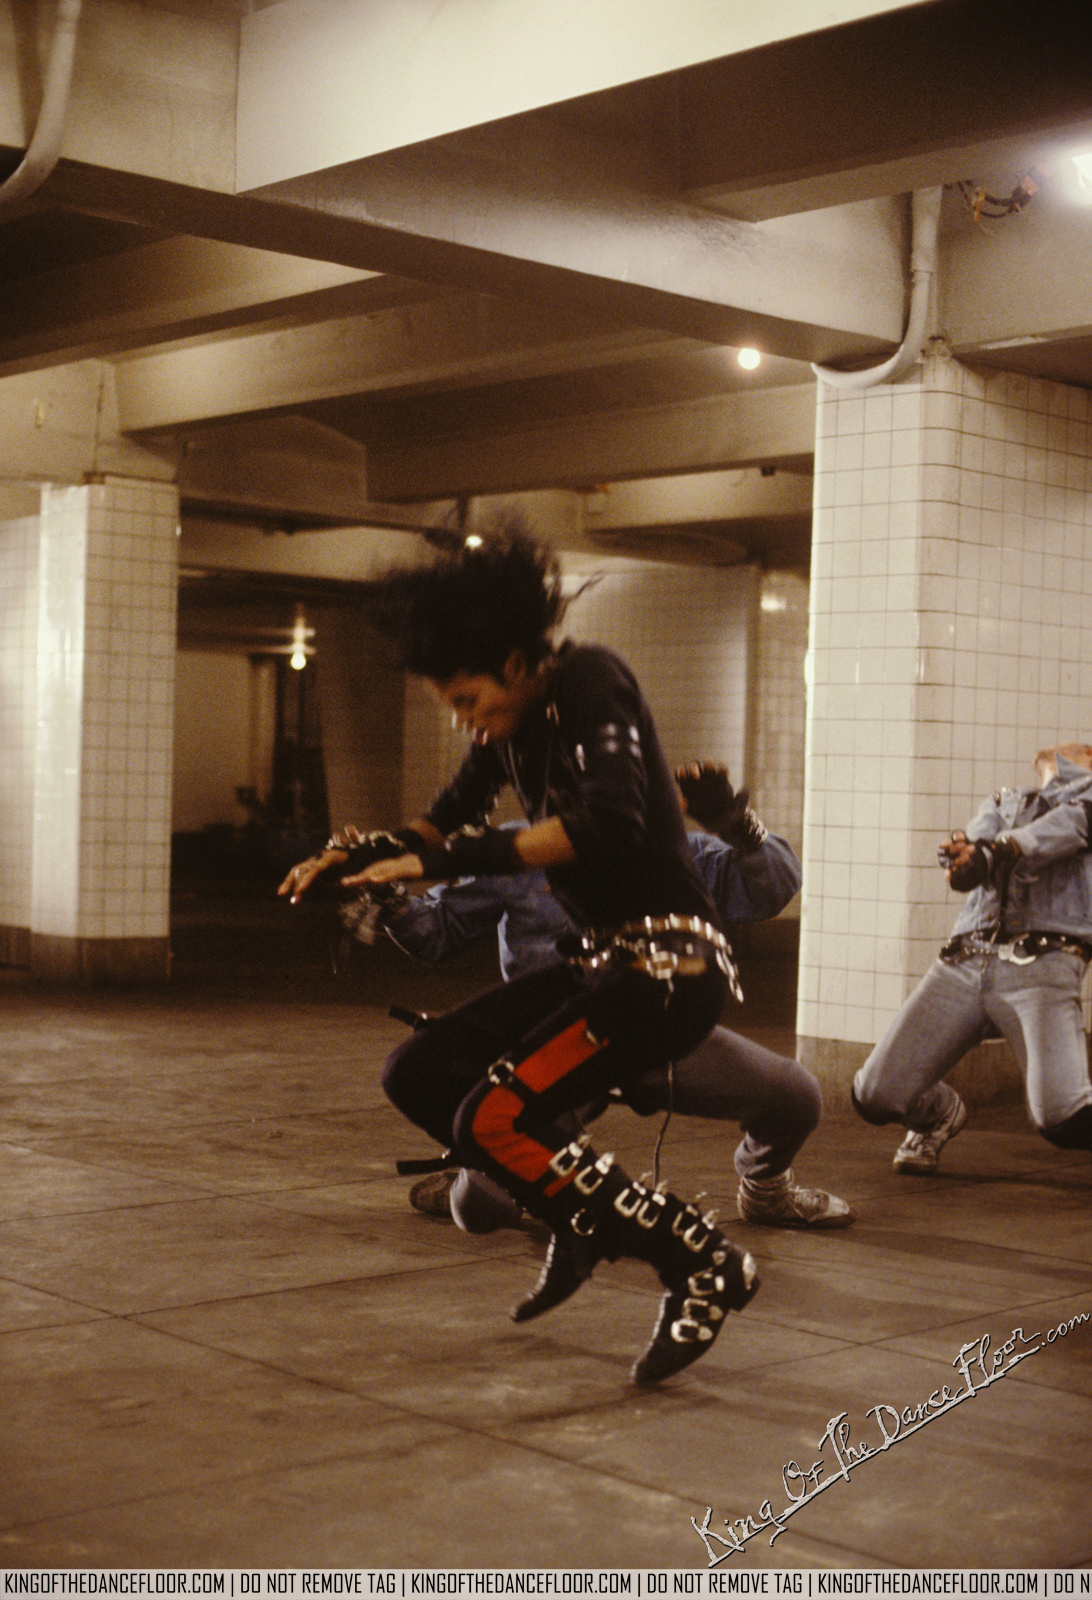 The Making Of Where Do Little Spiders: Rare Behind The Scenes Photos Of Michael Jackson While